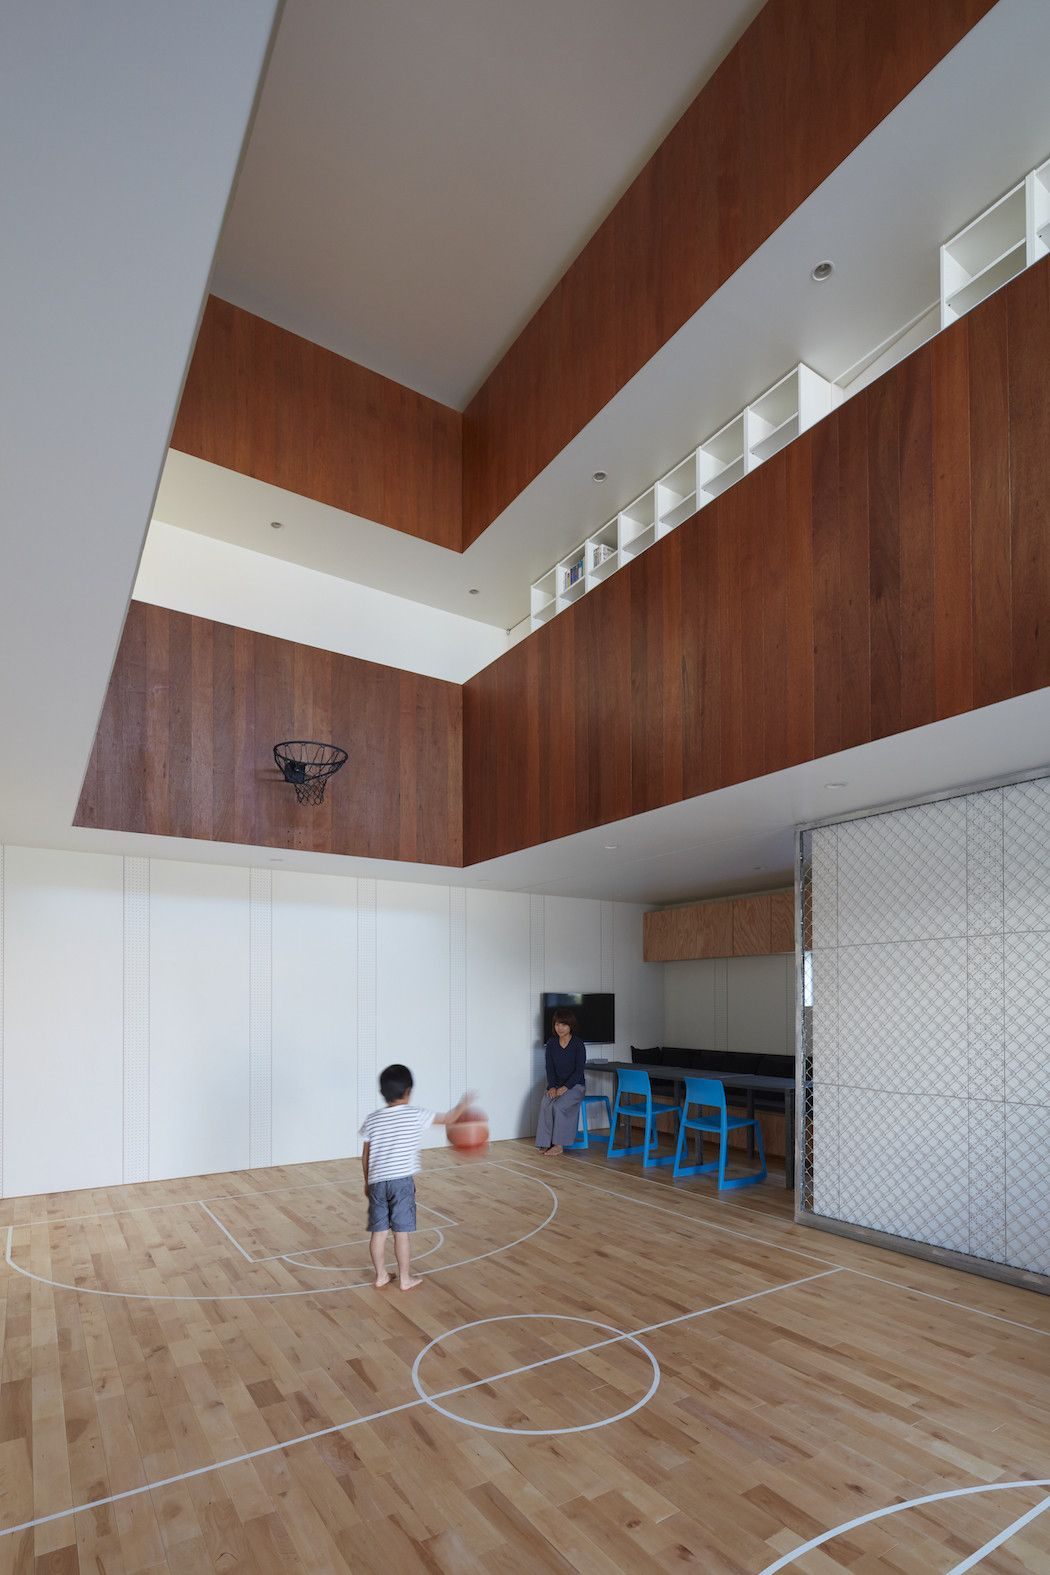 Koizumi Sekkei Placed A Basketball Court In A House Ignant Indoor Basketball Court Basketball Court Indoor Basketball